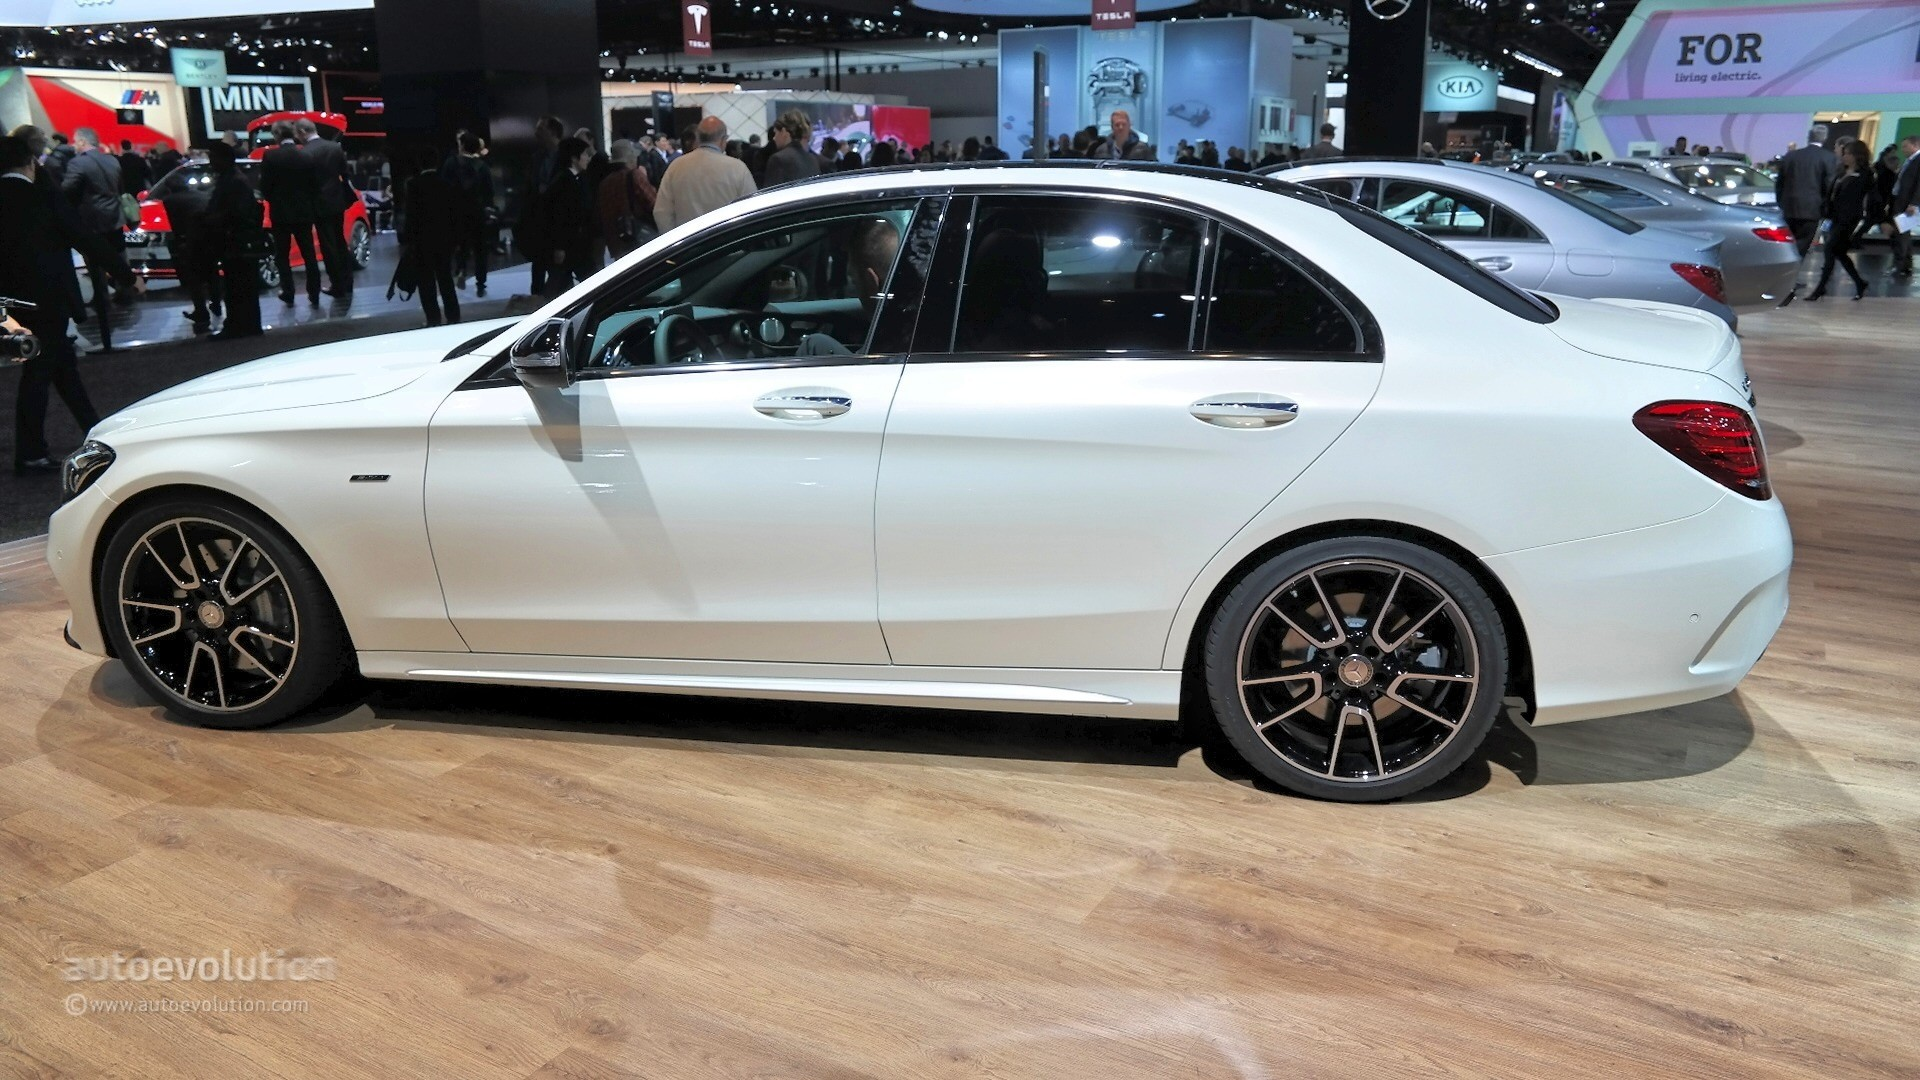 Mercedes Benz C450 Amg Sport Looks Ordinary At 2015